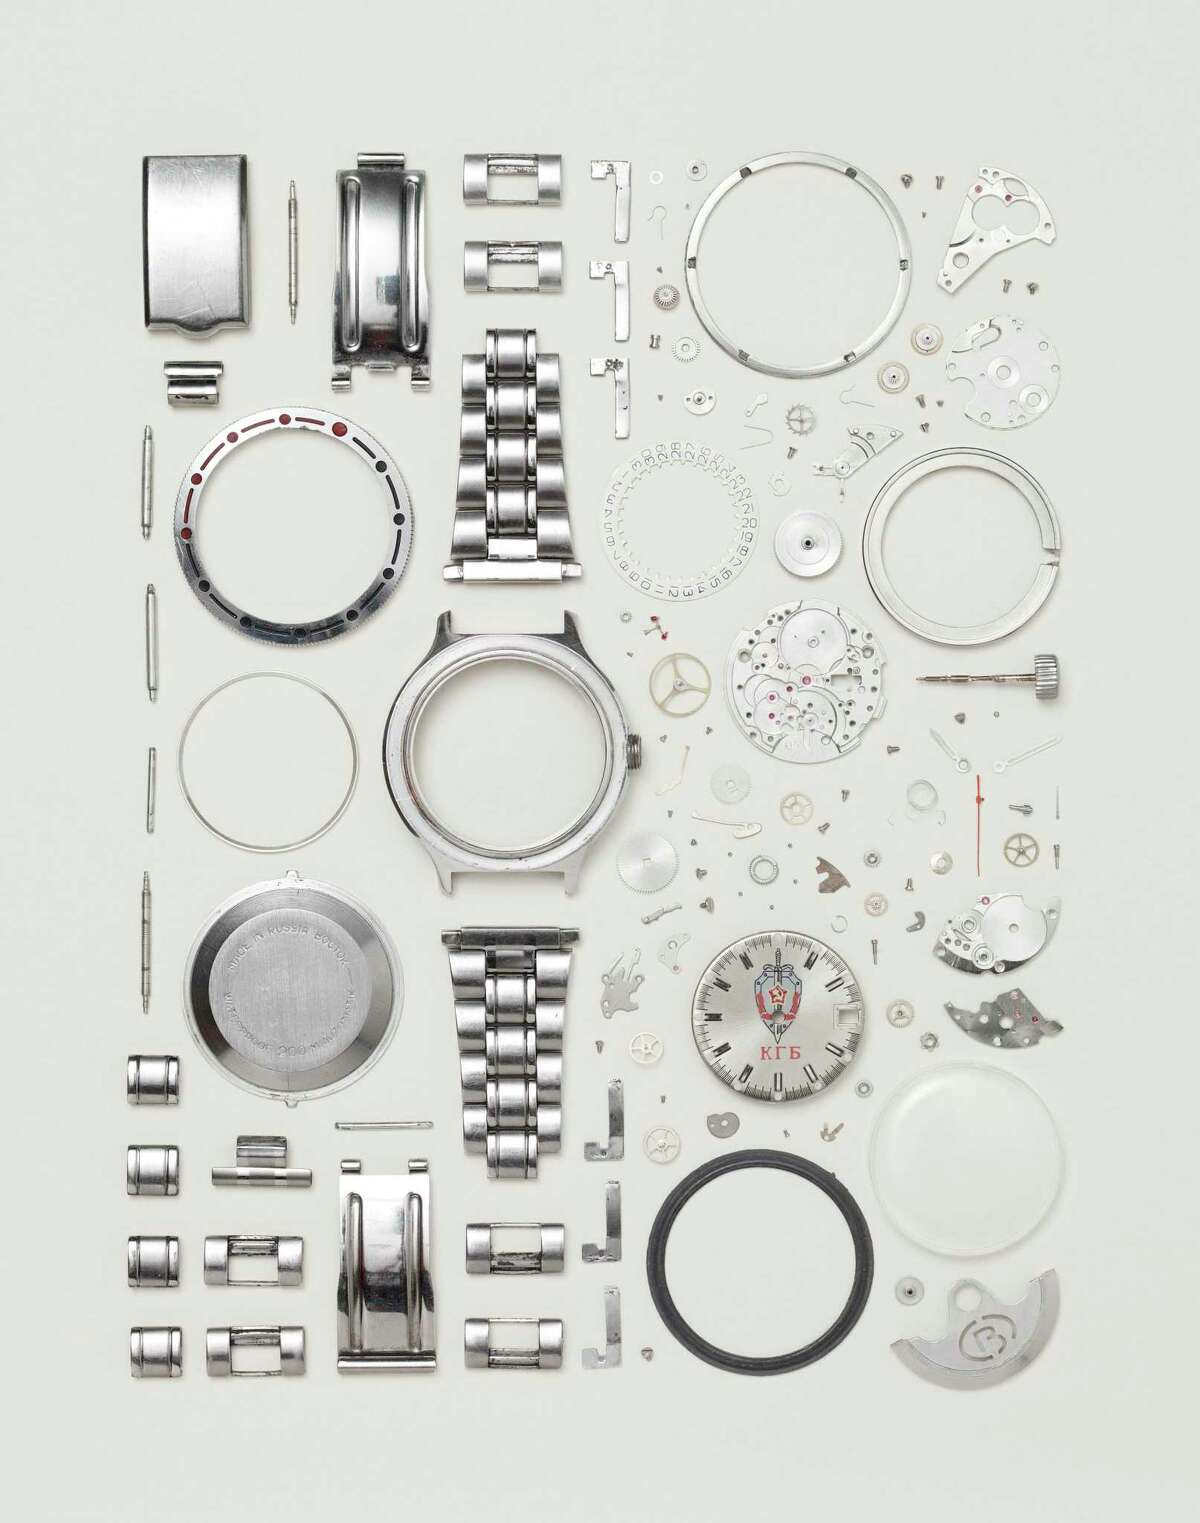 Todd McLellan photographs disassembled objects like this watch for his show